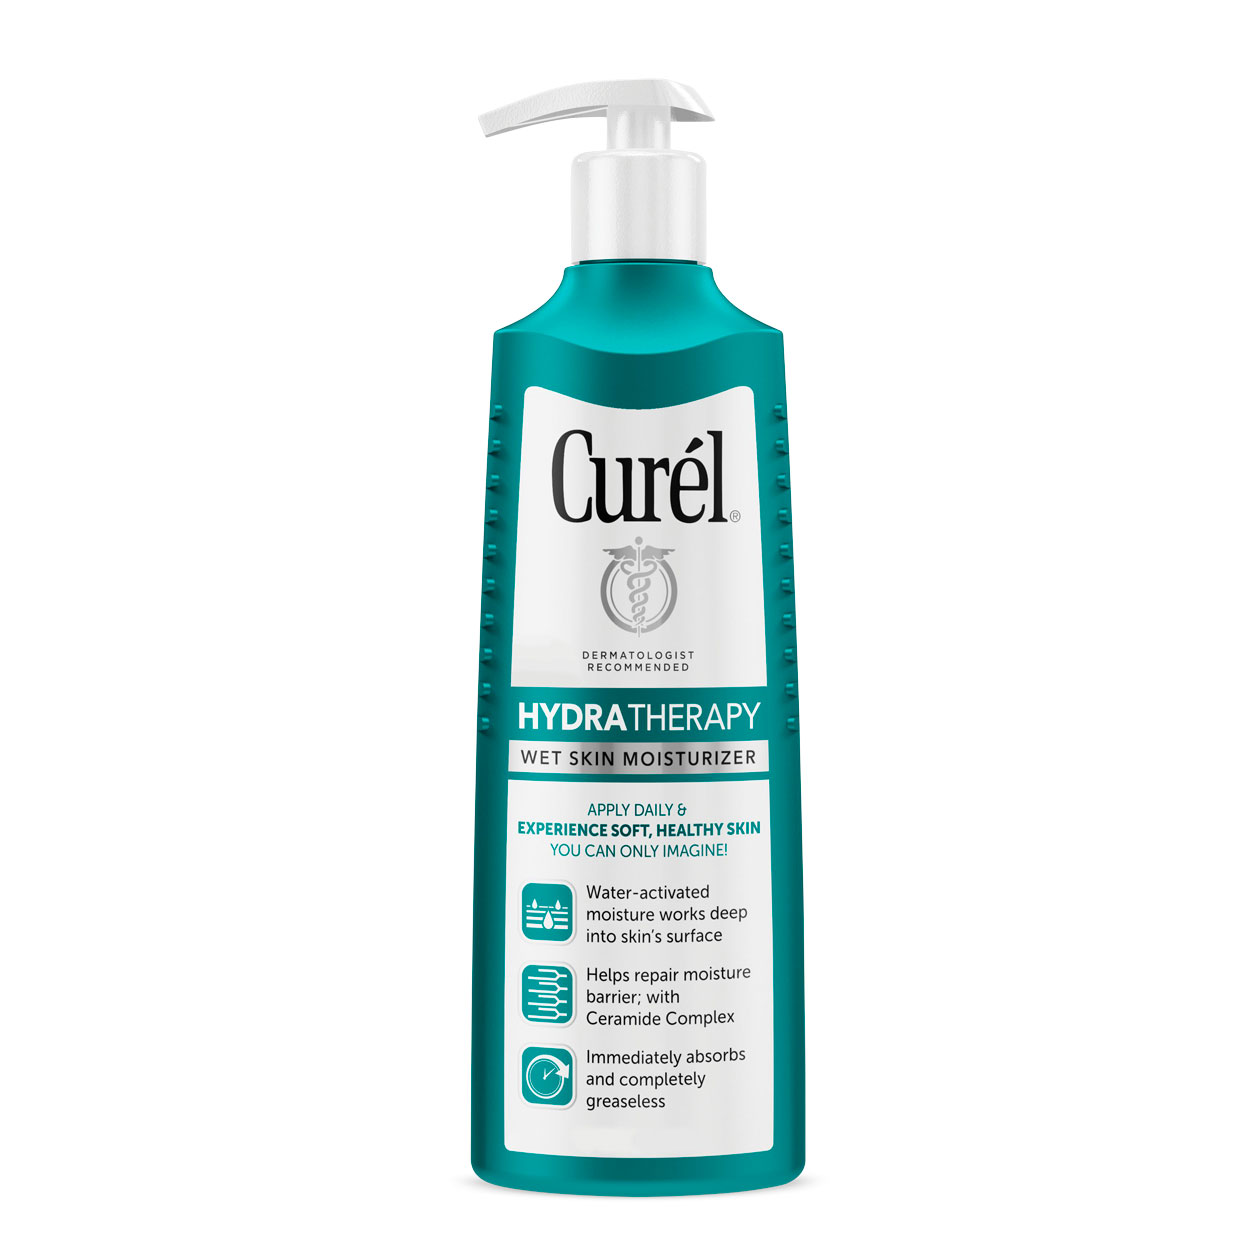 Curel HydraTherapy Wet Skin Body Moisturizer